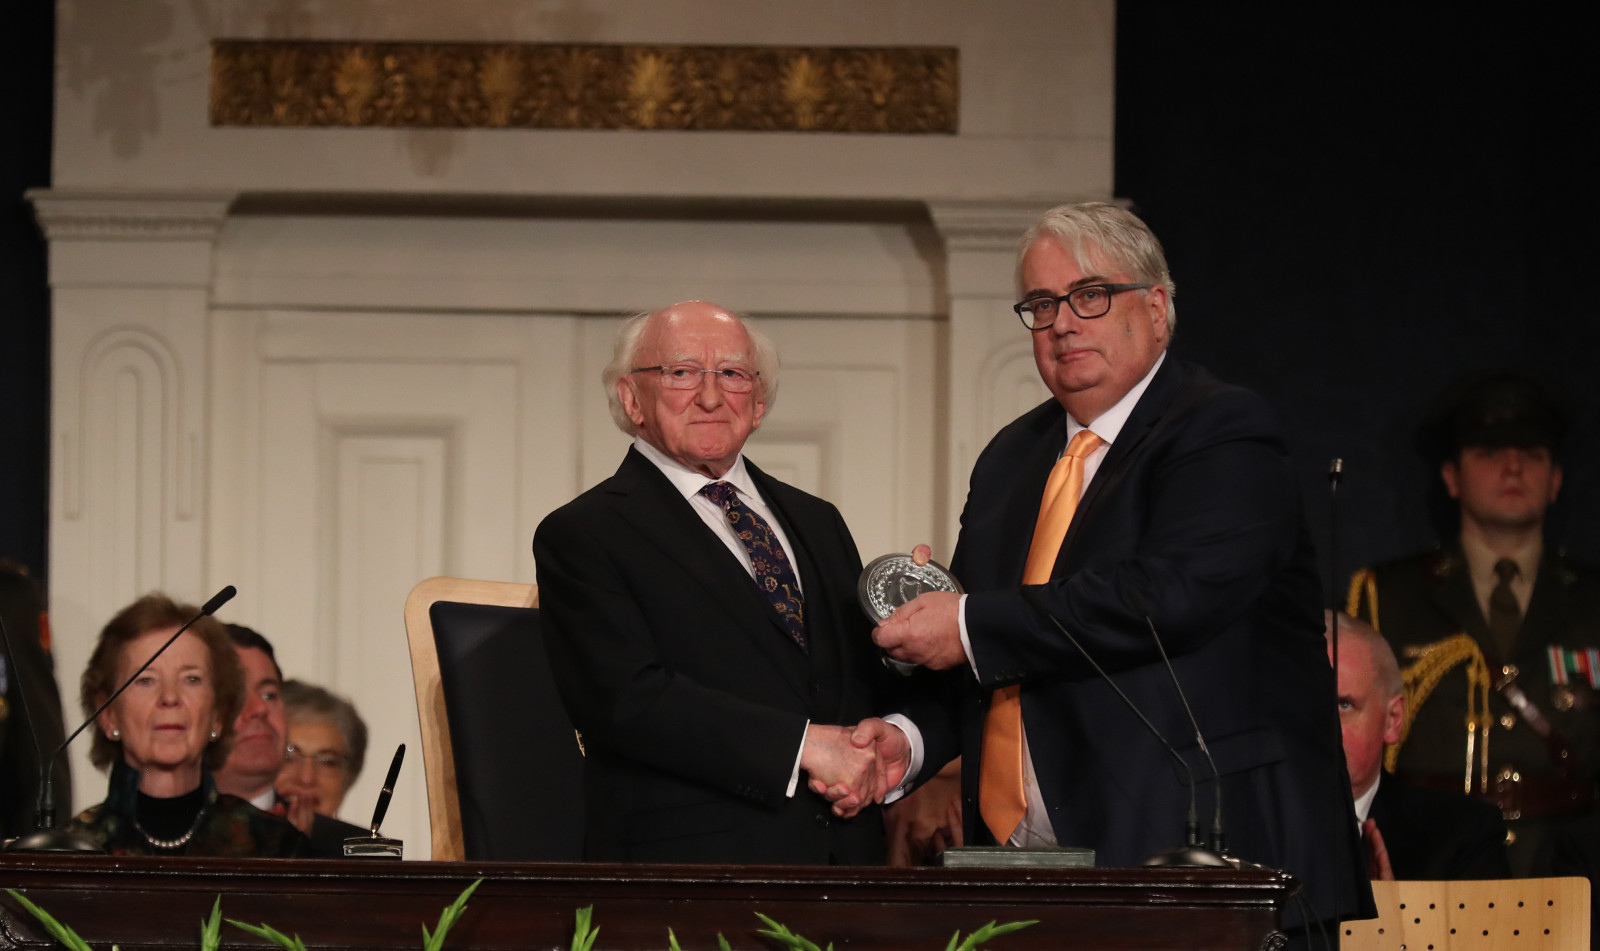 Inauguration of President Michael D. Higgins